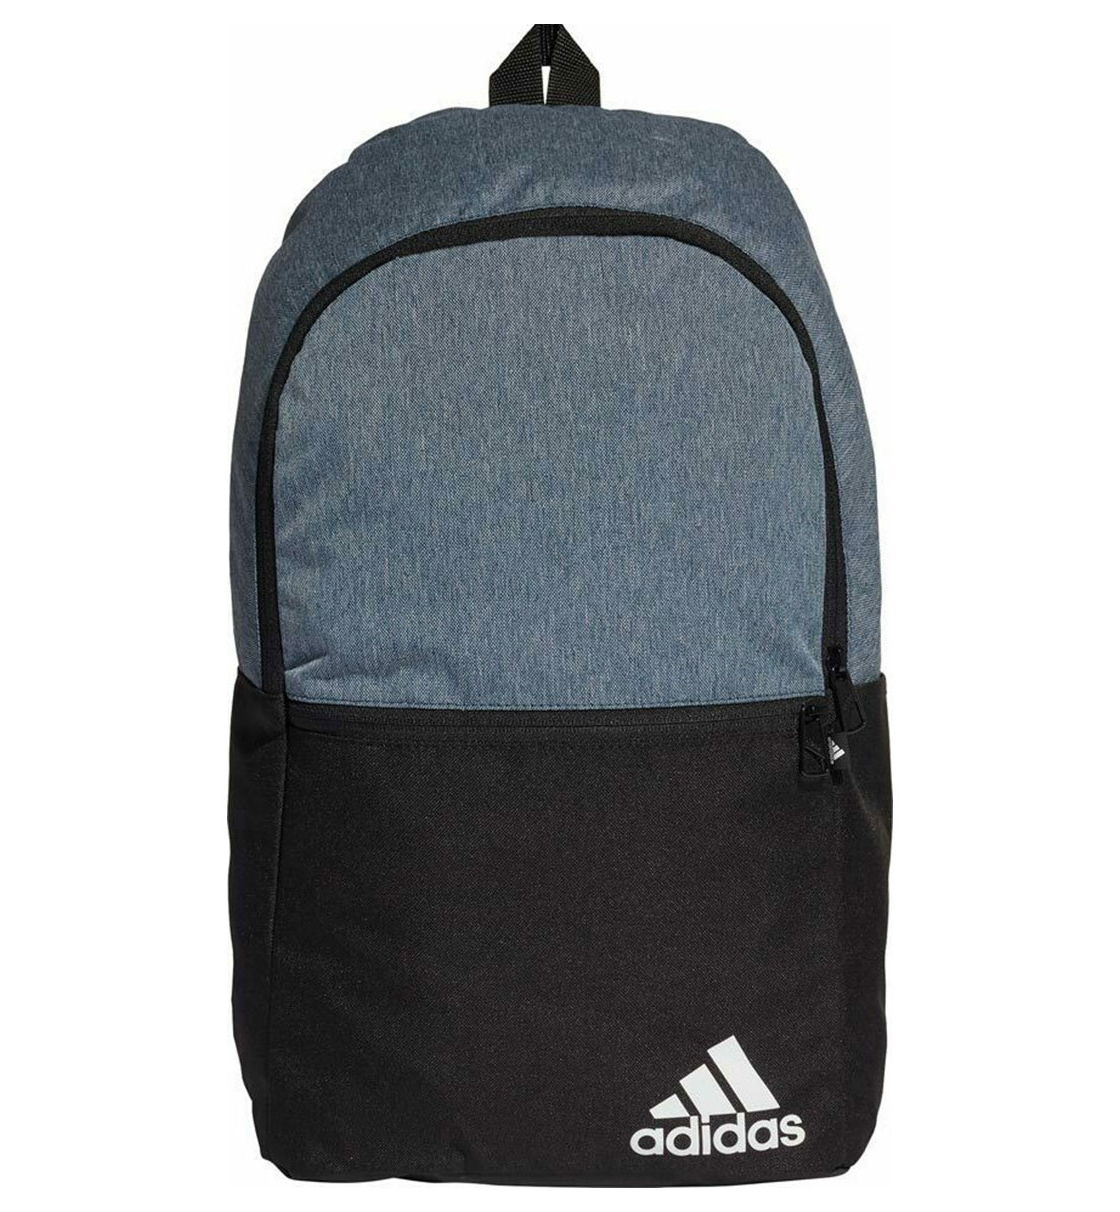 adidas Σακίδιο Πλάτης Ss21 Daily Backpack Ii GN1978